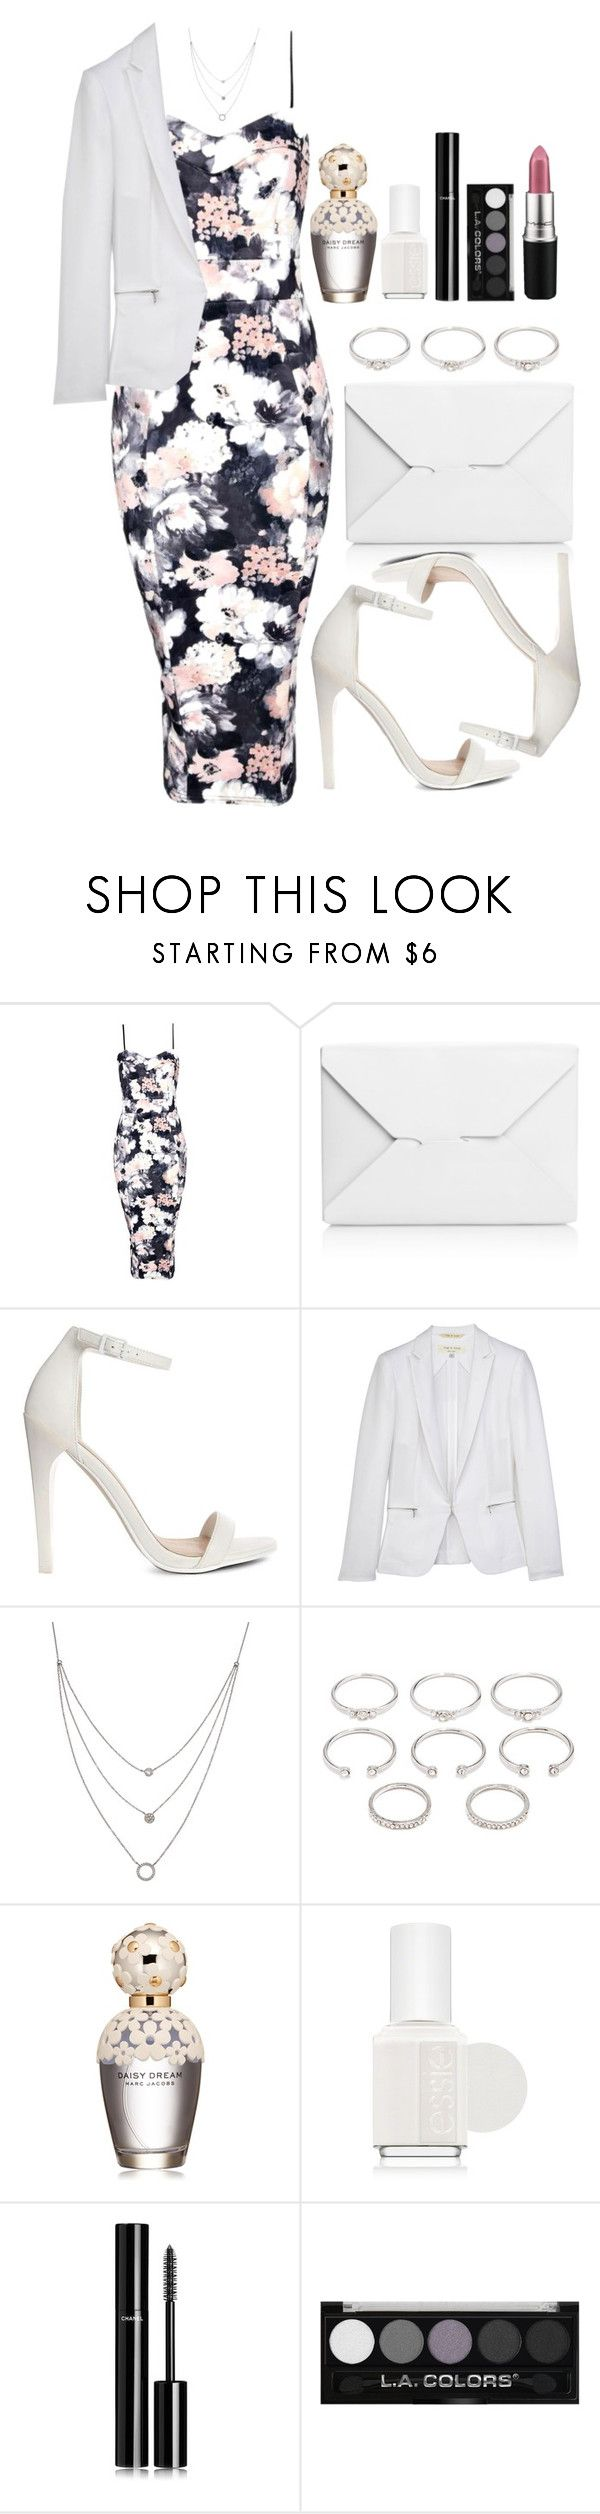 """""""Untitled #3469"""" by natalyasidunova ❤ liked on Polyvore featuring Boohoo, J.W. Anderson, ASOS, rag & bone, Athra Luxe, Forever 21, Marc Jacobs, Essie, Chanel and MAC Cosmetics"""